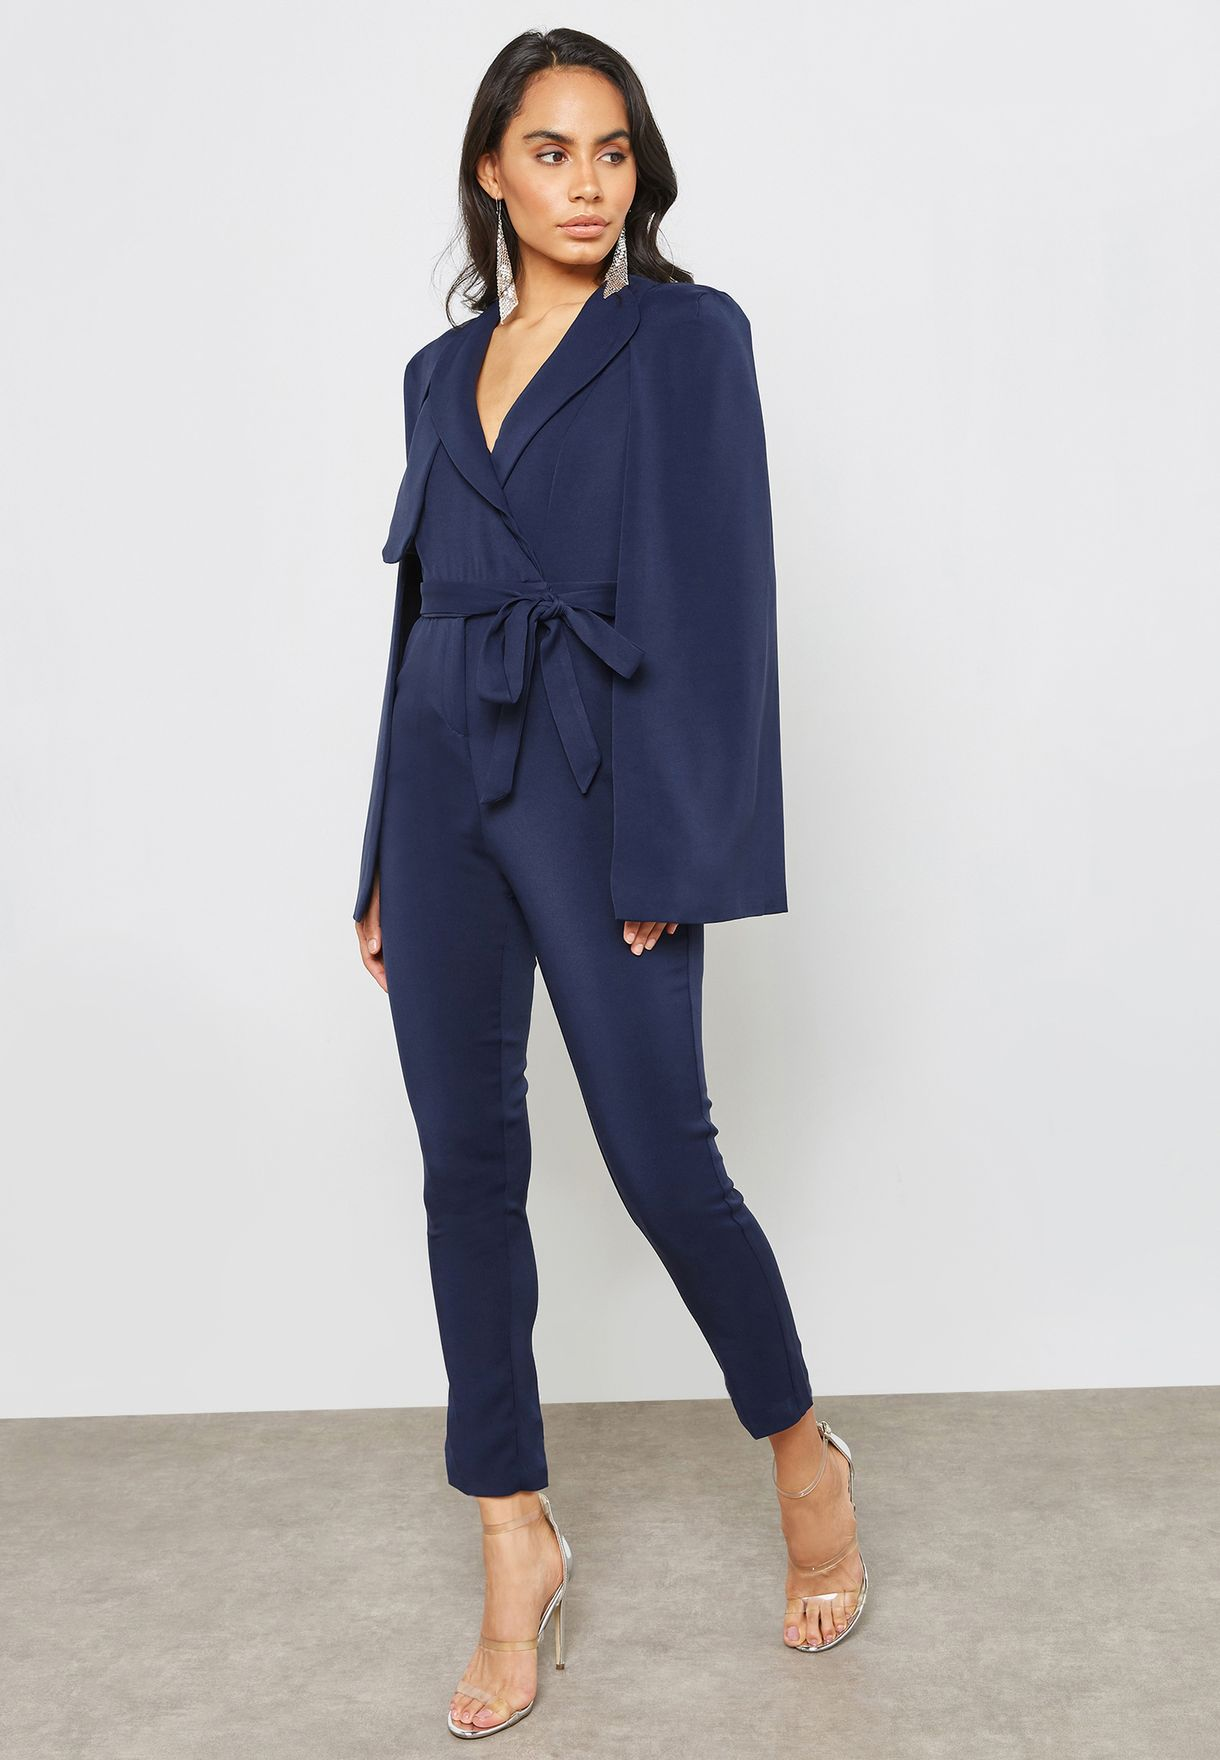 c68d4de3be Shop Lavish Alice navy Tailored Cape Jumpsuit LA-961-NVY for Women ...